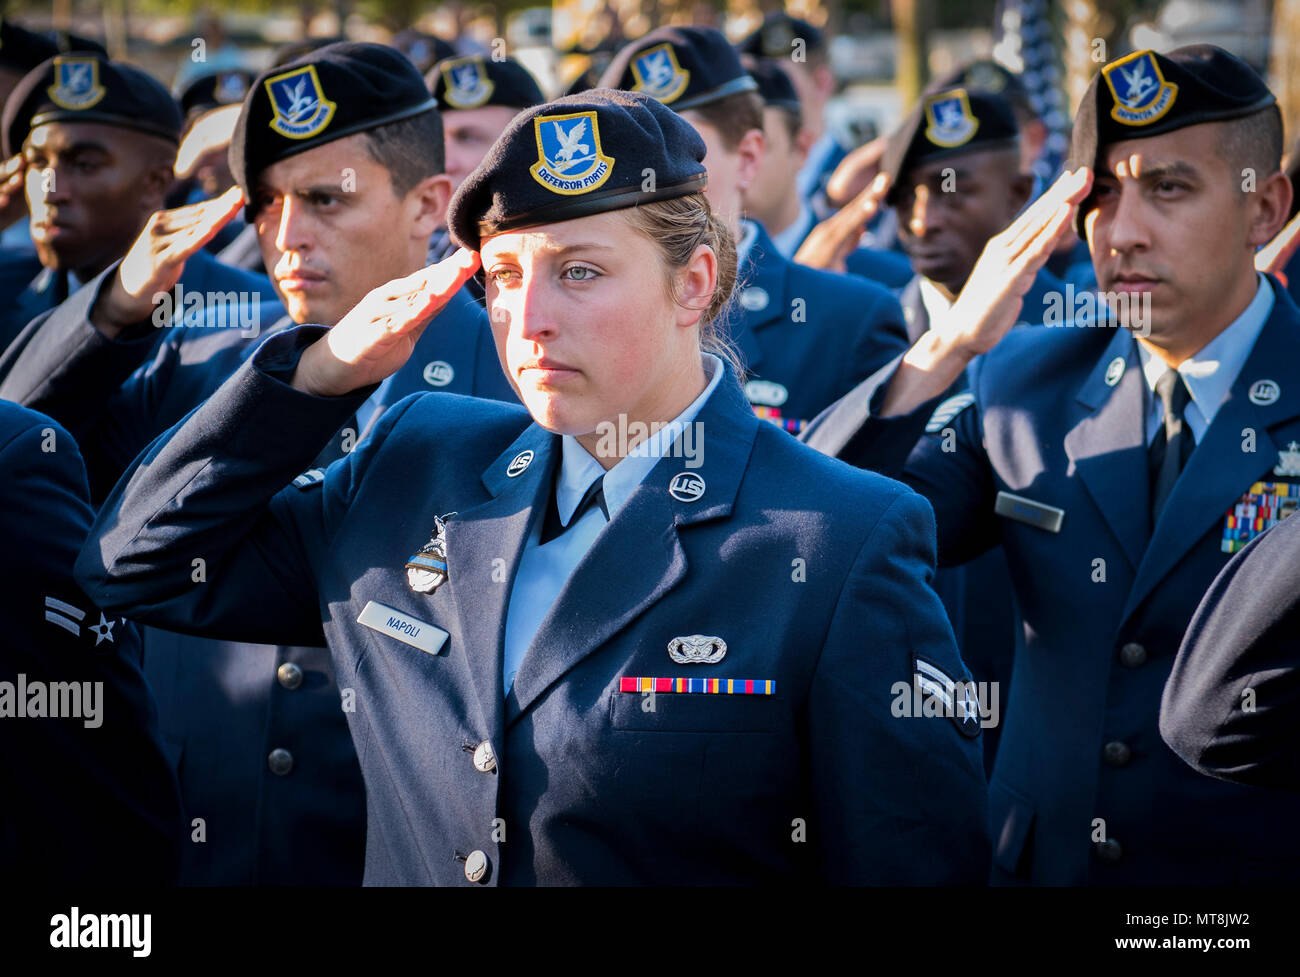 Airman 1st Class Danielle Napoli, 96th Security Forces Squadron, and